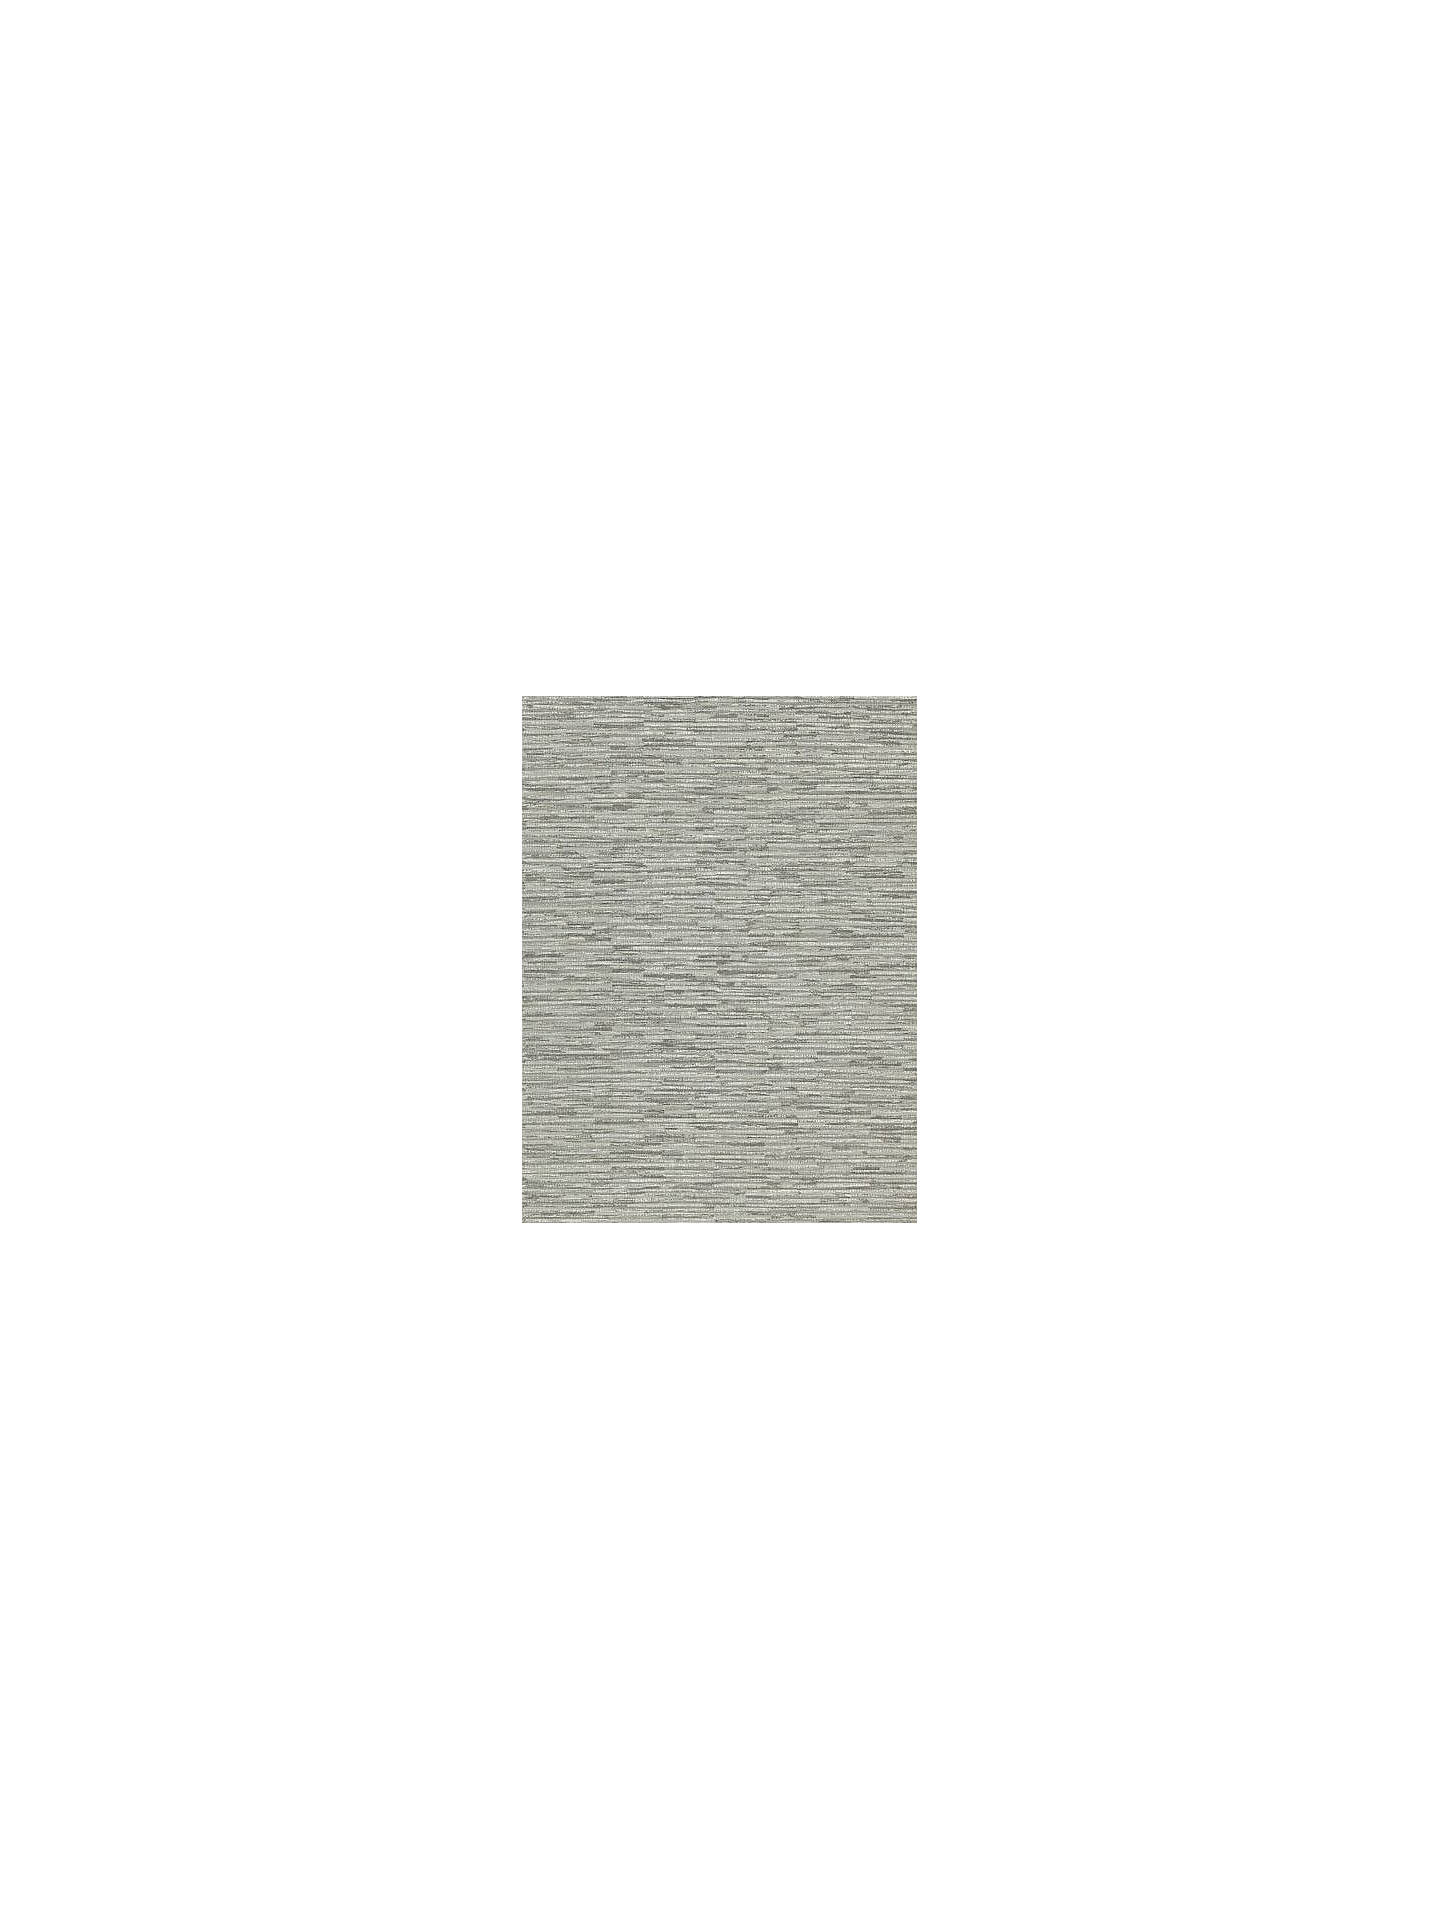 Buy Harlequin Flint Wallpaper, 110351 Online at johnlewis.com